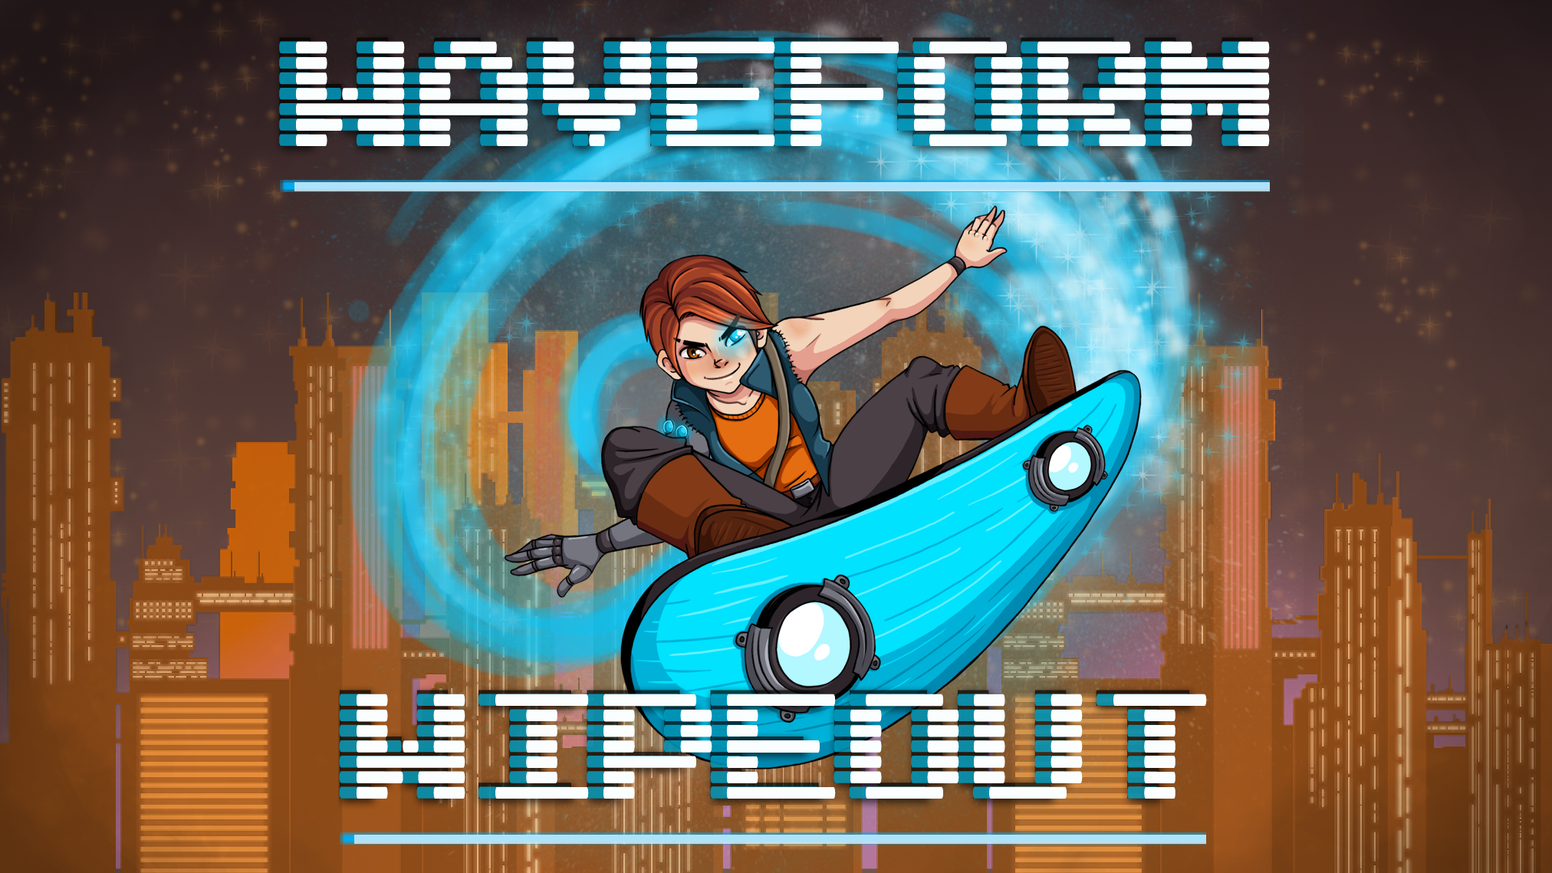 Waveform Wipeout is a game where the player must surf on (and do rad tricks off of) audio waves generated based on your music.